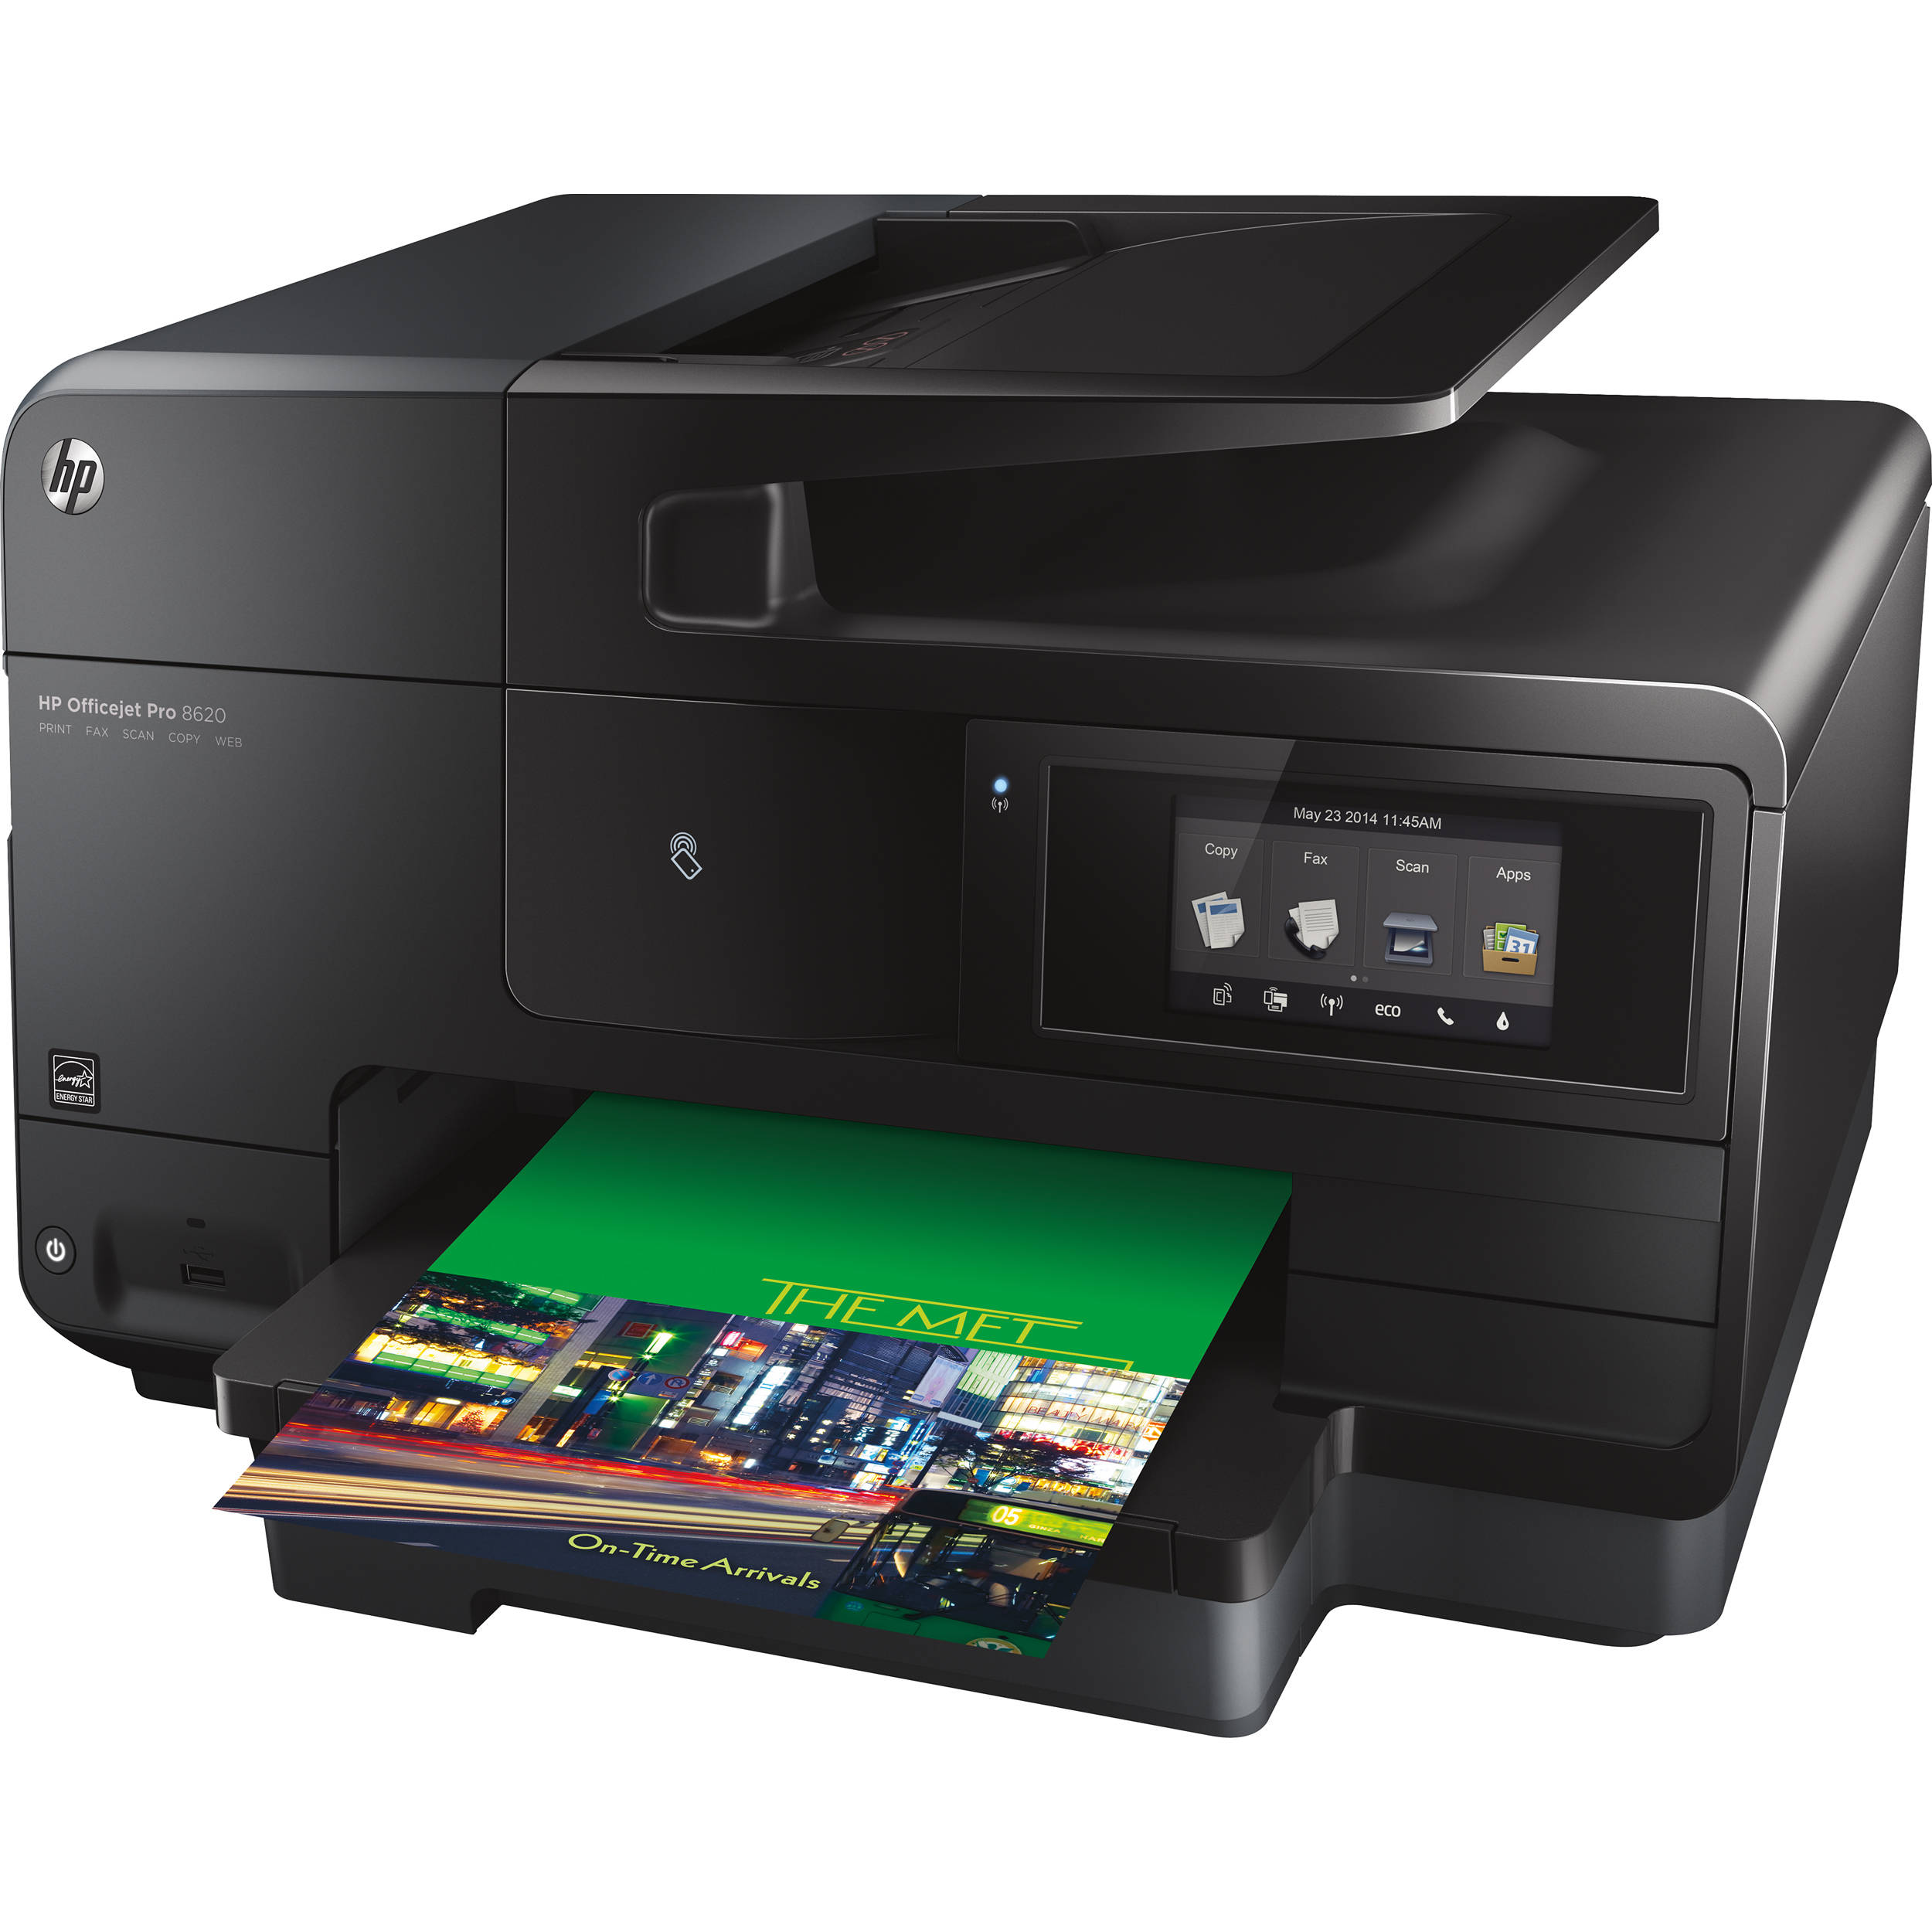 HP Officejet Pro 8620 e-All-in-One Wireless Color A7F65A# ...